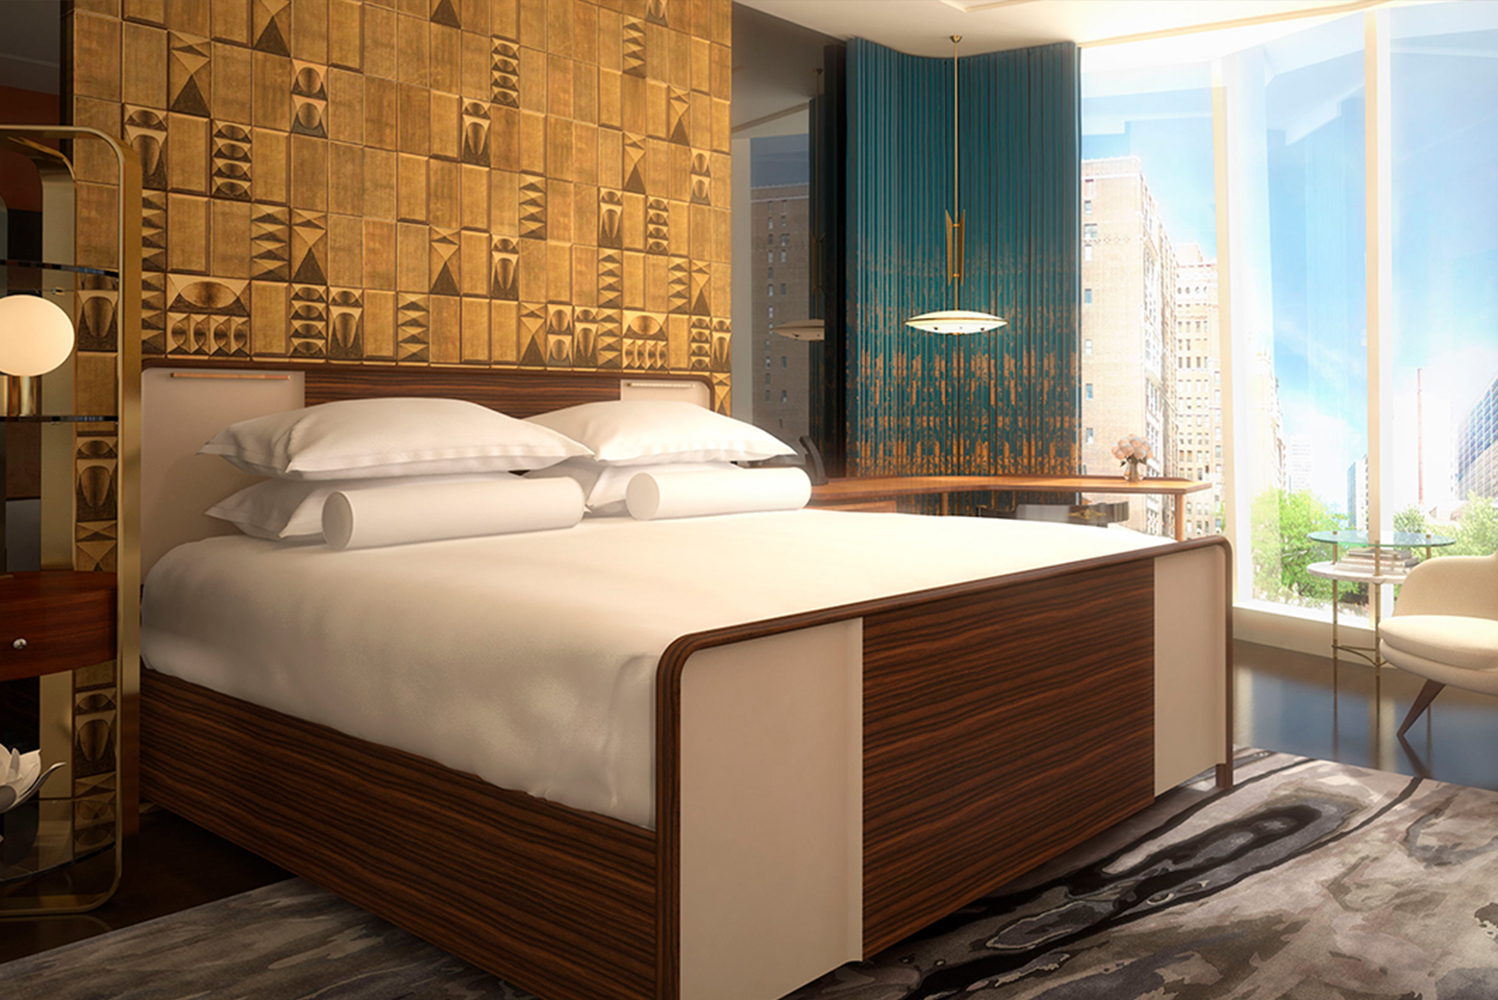 JDR Hospitality Solutions provided the casegoods, upholstery and lighting for the Viceroy Chicago.